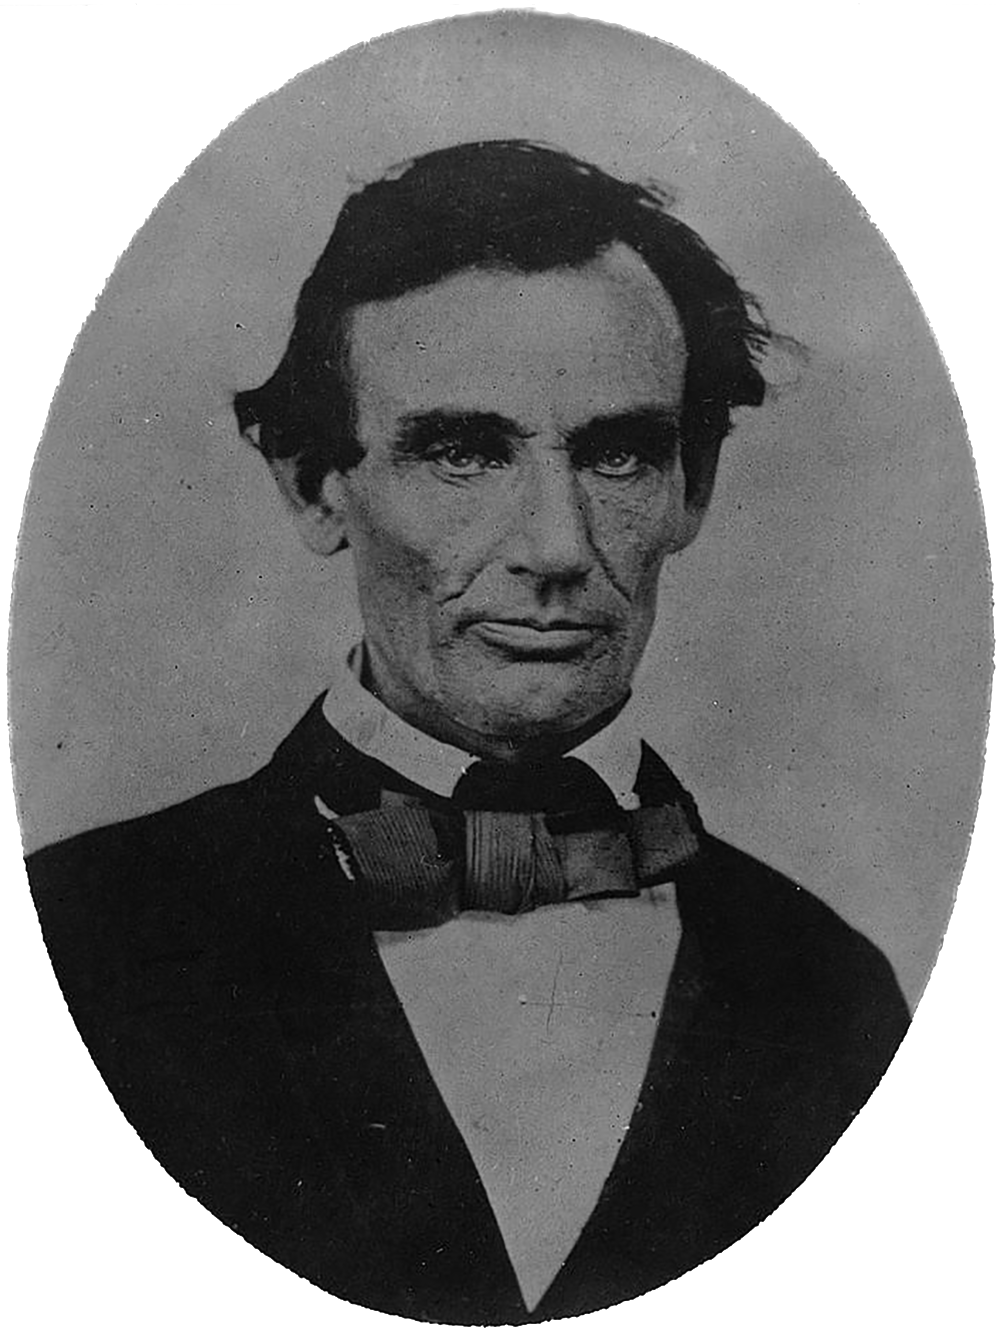 Abe Lincoln - we -3a18600v.png